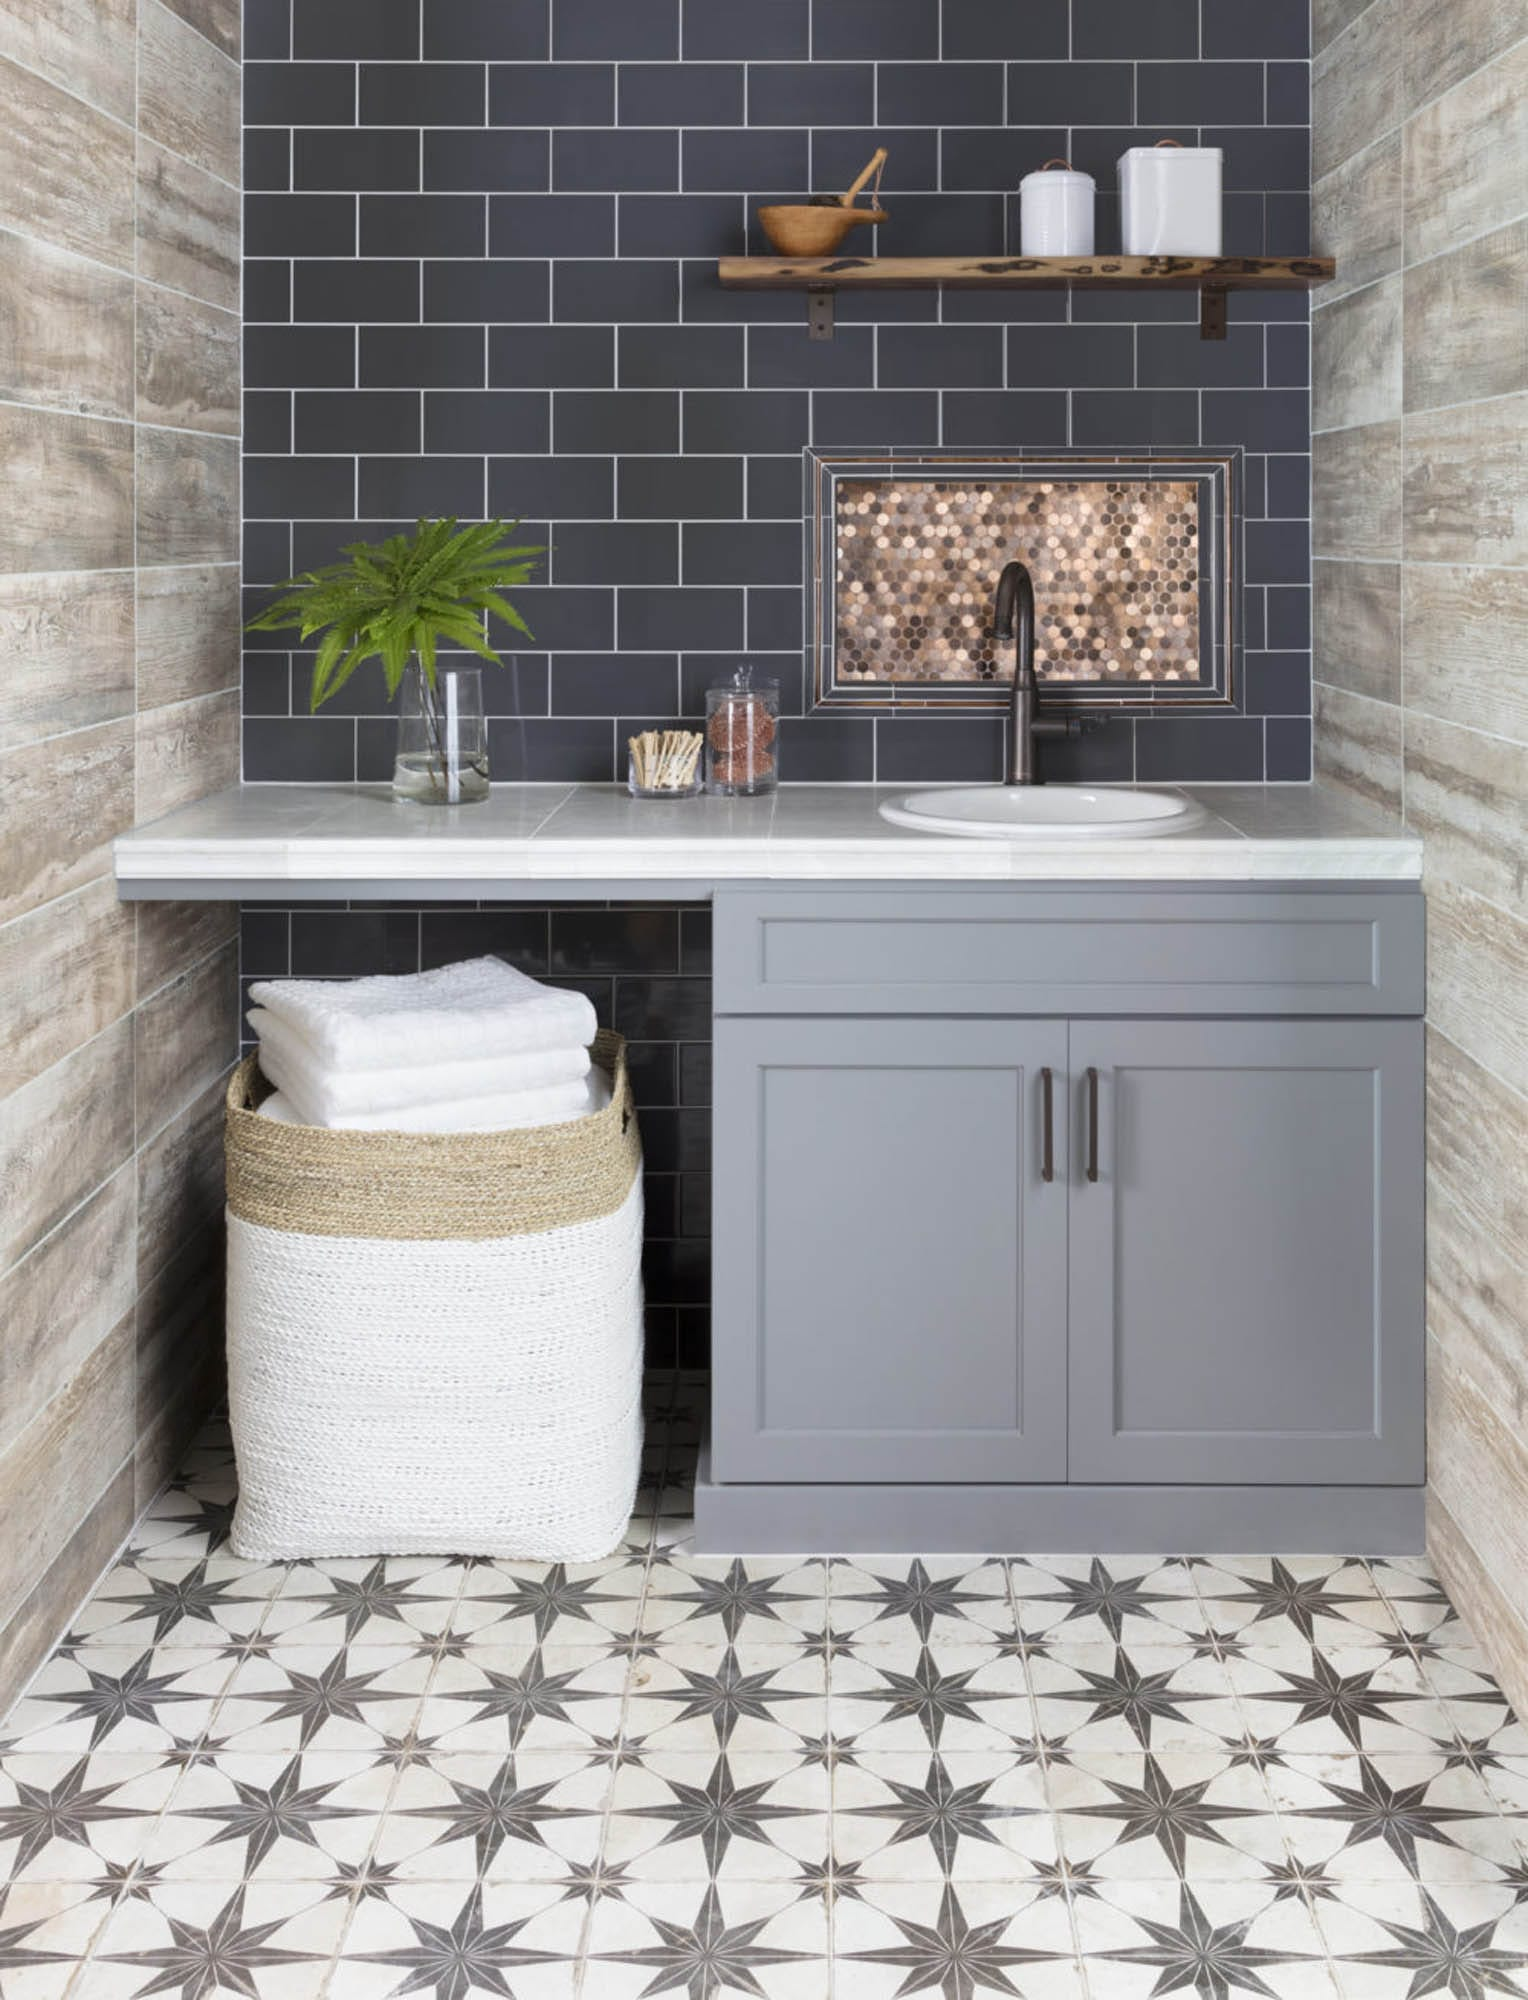 Modern farmhouse tile design